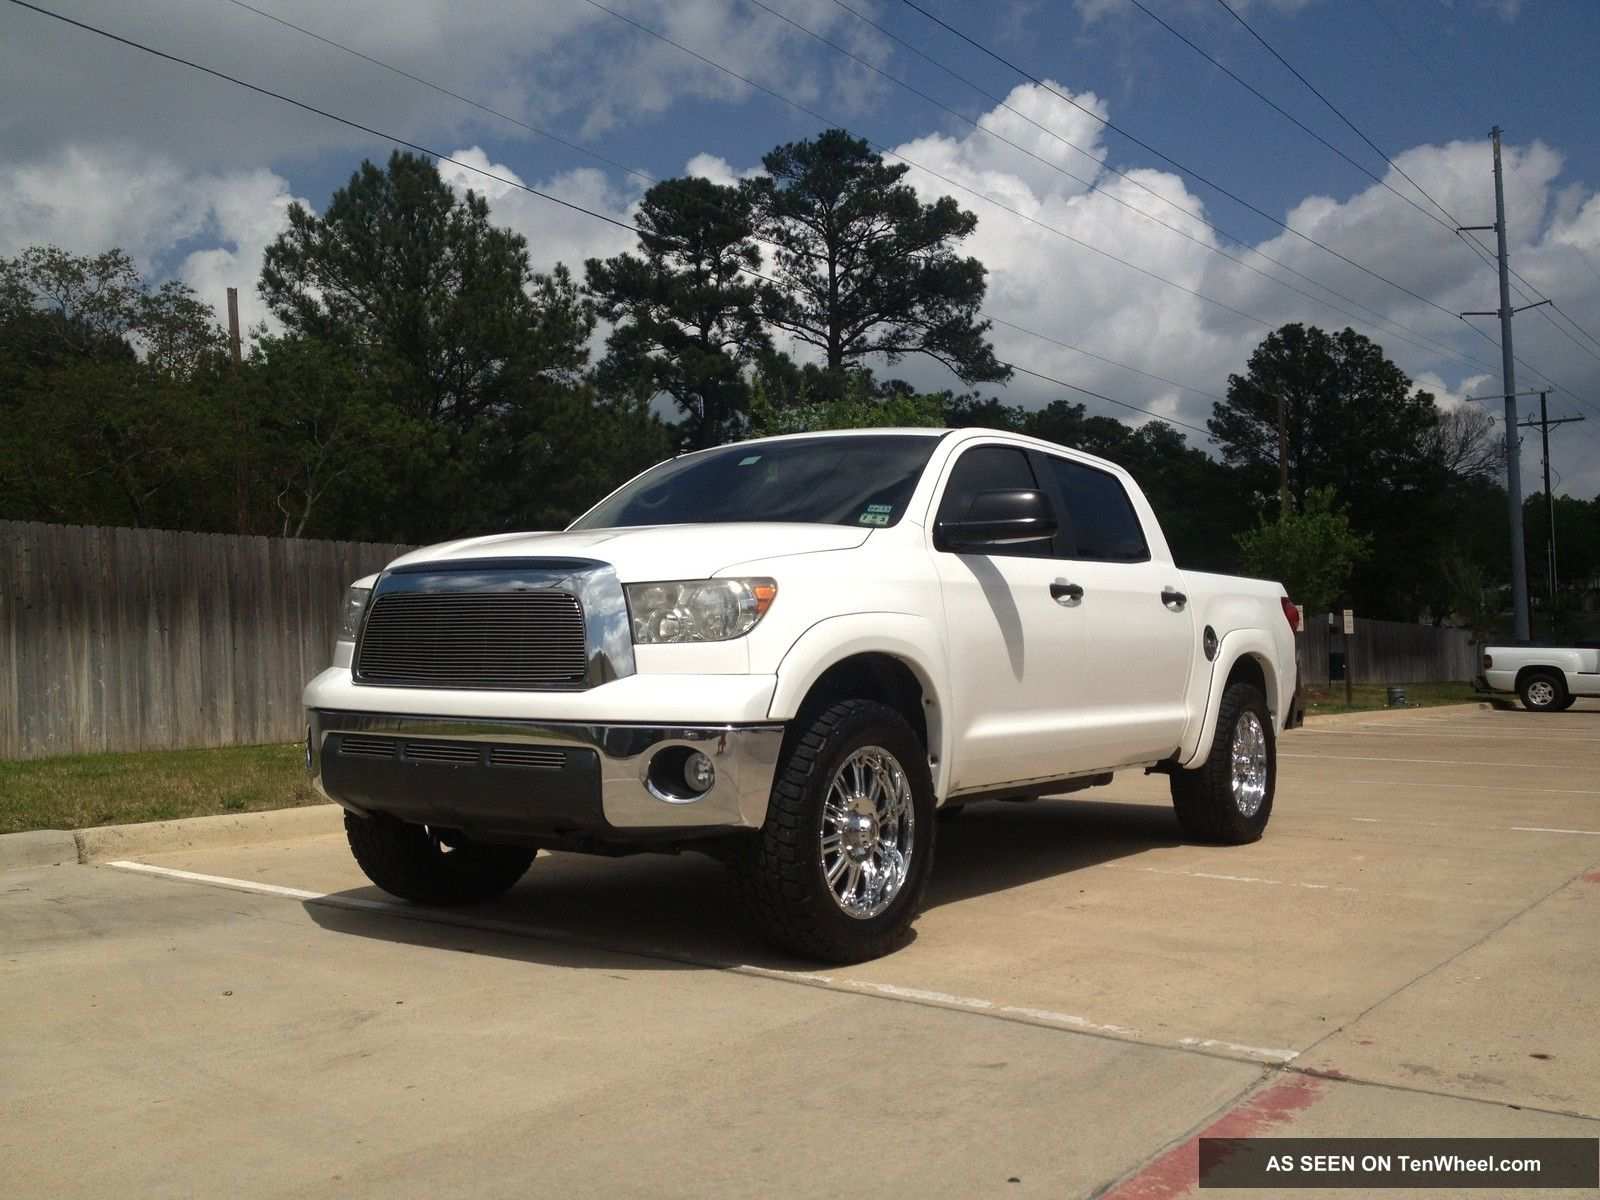 2008 toyota tundra sr5 extended crew cab pickup 4 door 5 7l tundra. Black Bedroom Furniture Sets. Home Design Ideas